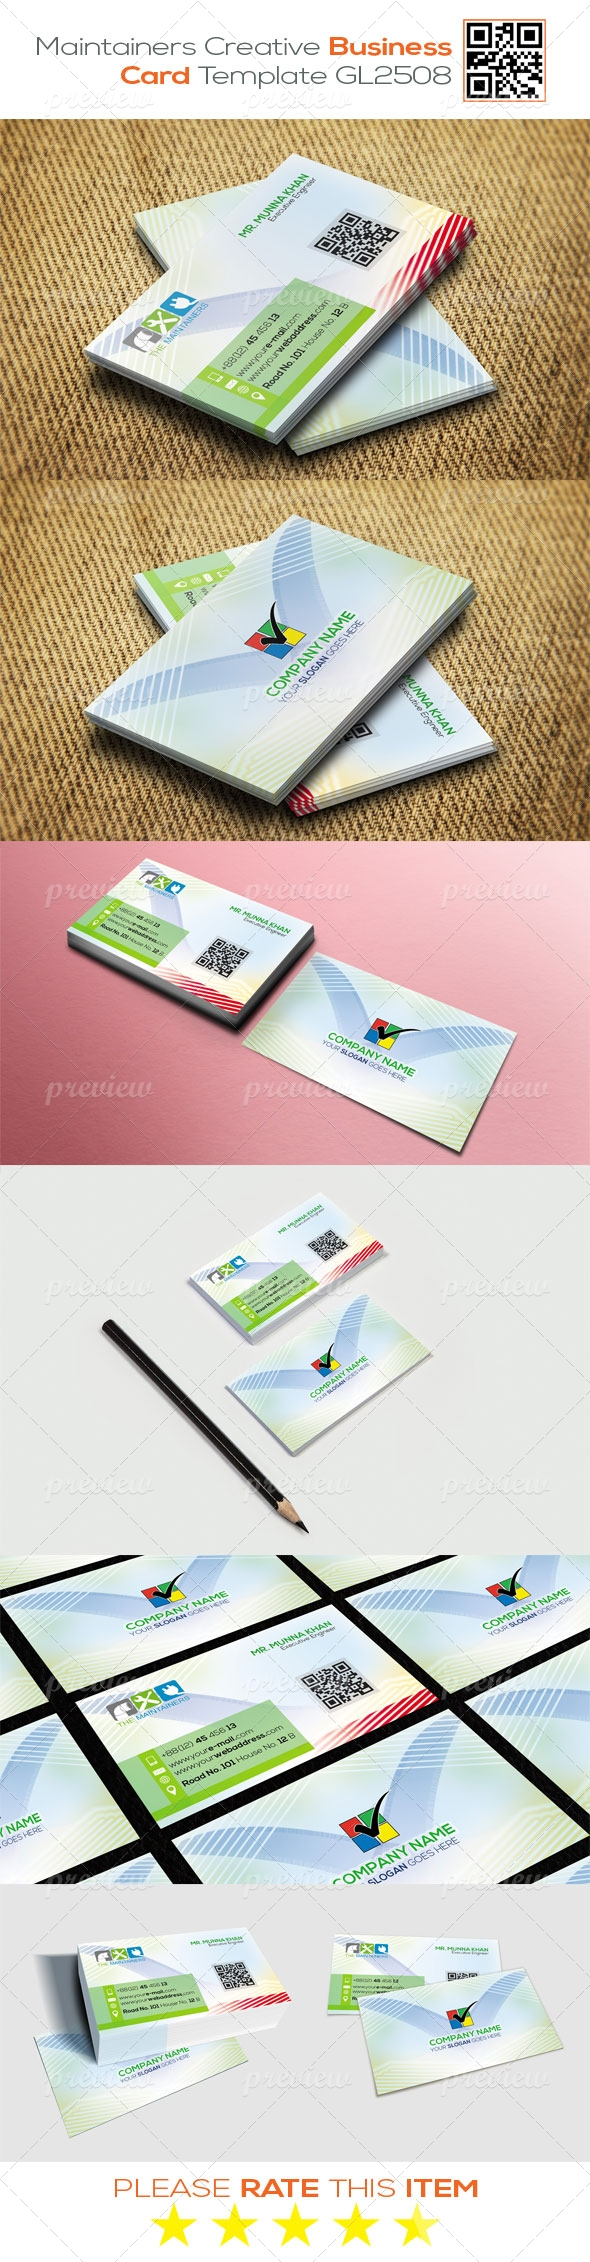 Maintainers Creative Business Card Template GL2508